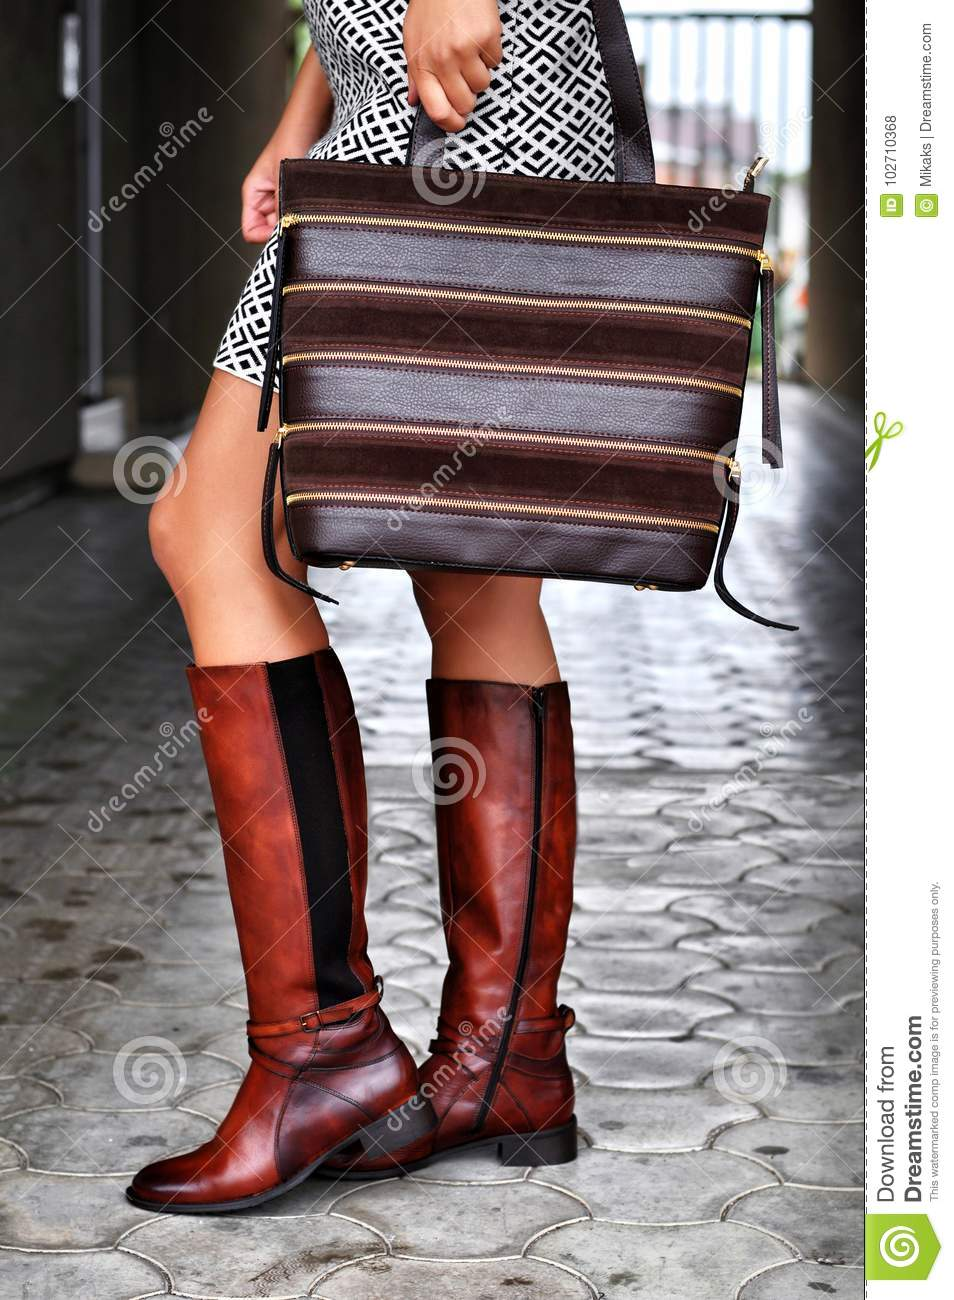 Stylish Woman Walking In City Street Wearing Brown Leather Boots